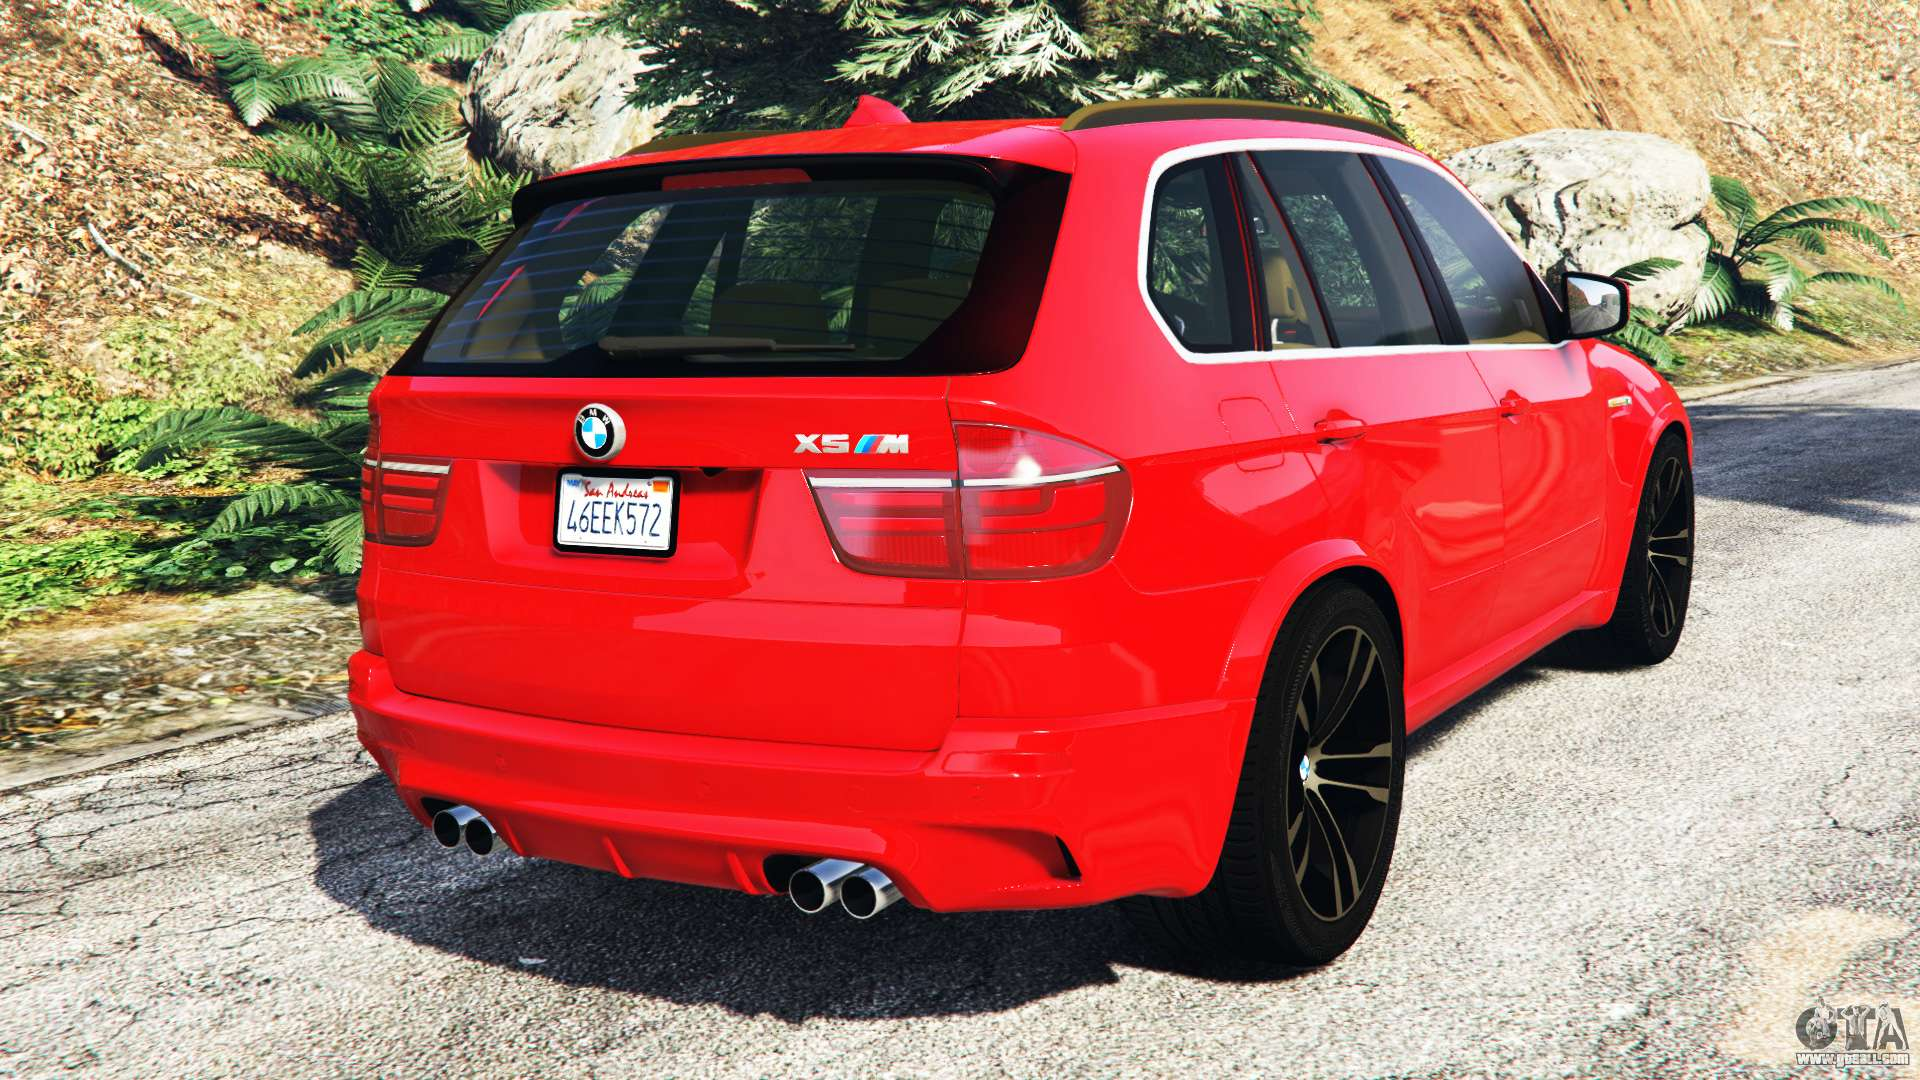 bmw x5 m e70 2013 v0 3 replace for gta 5. Black Bedroom Furniture Sets. Home Design Ideas